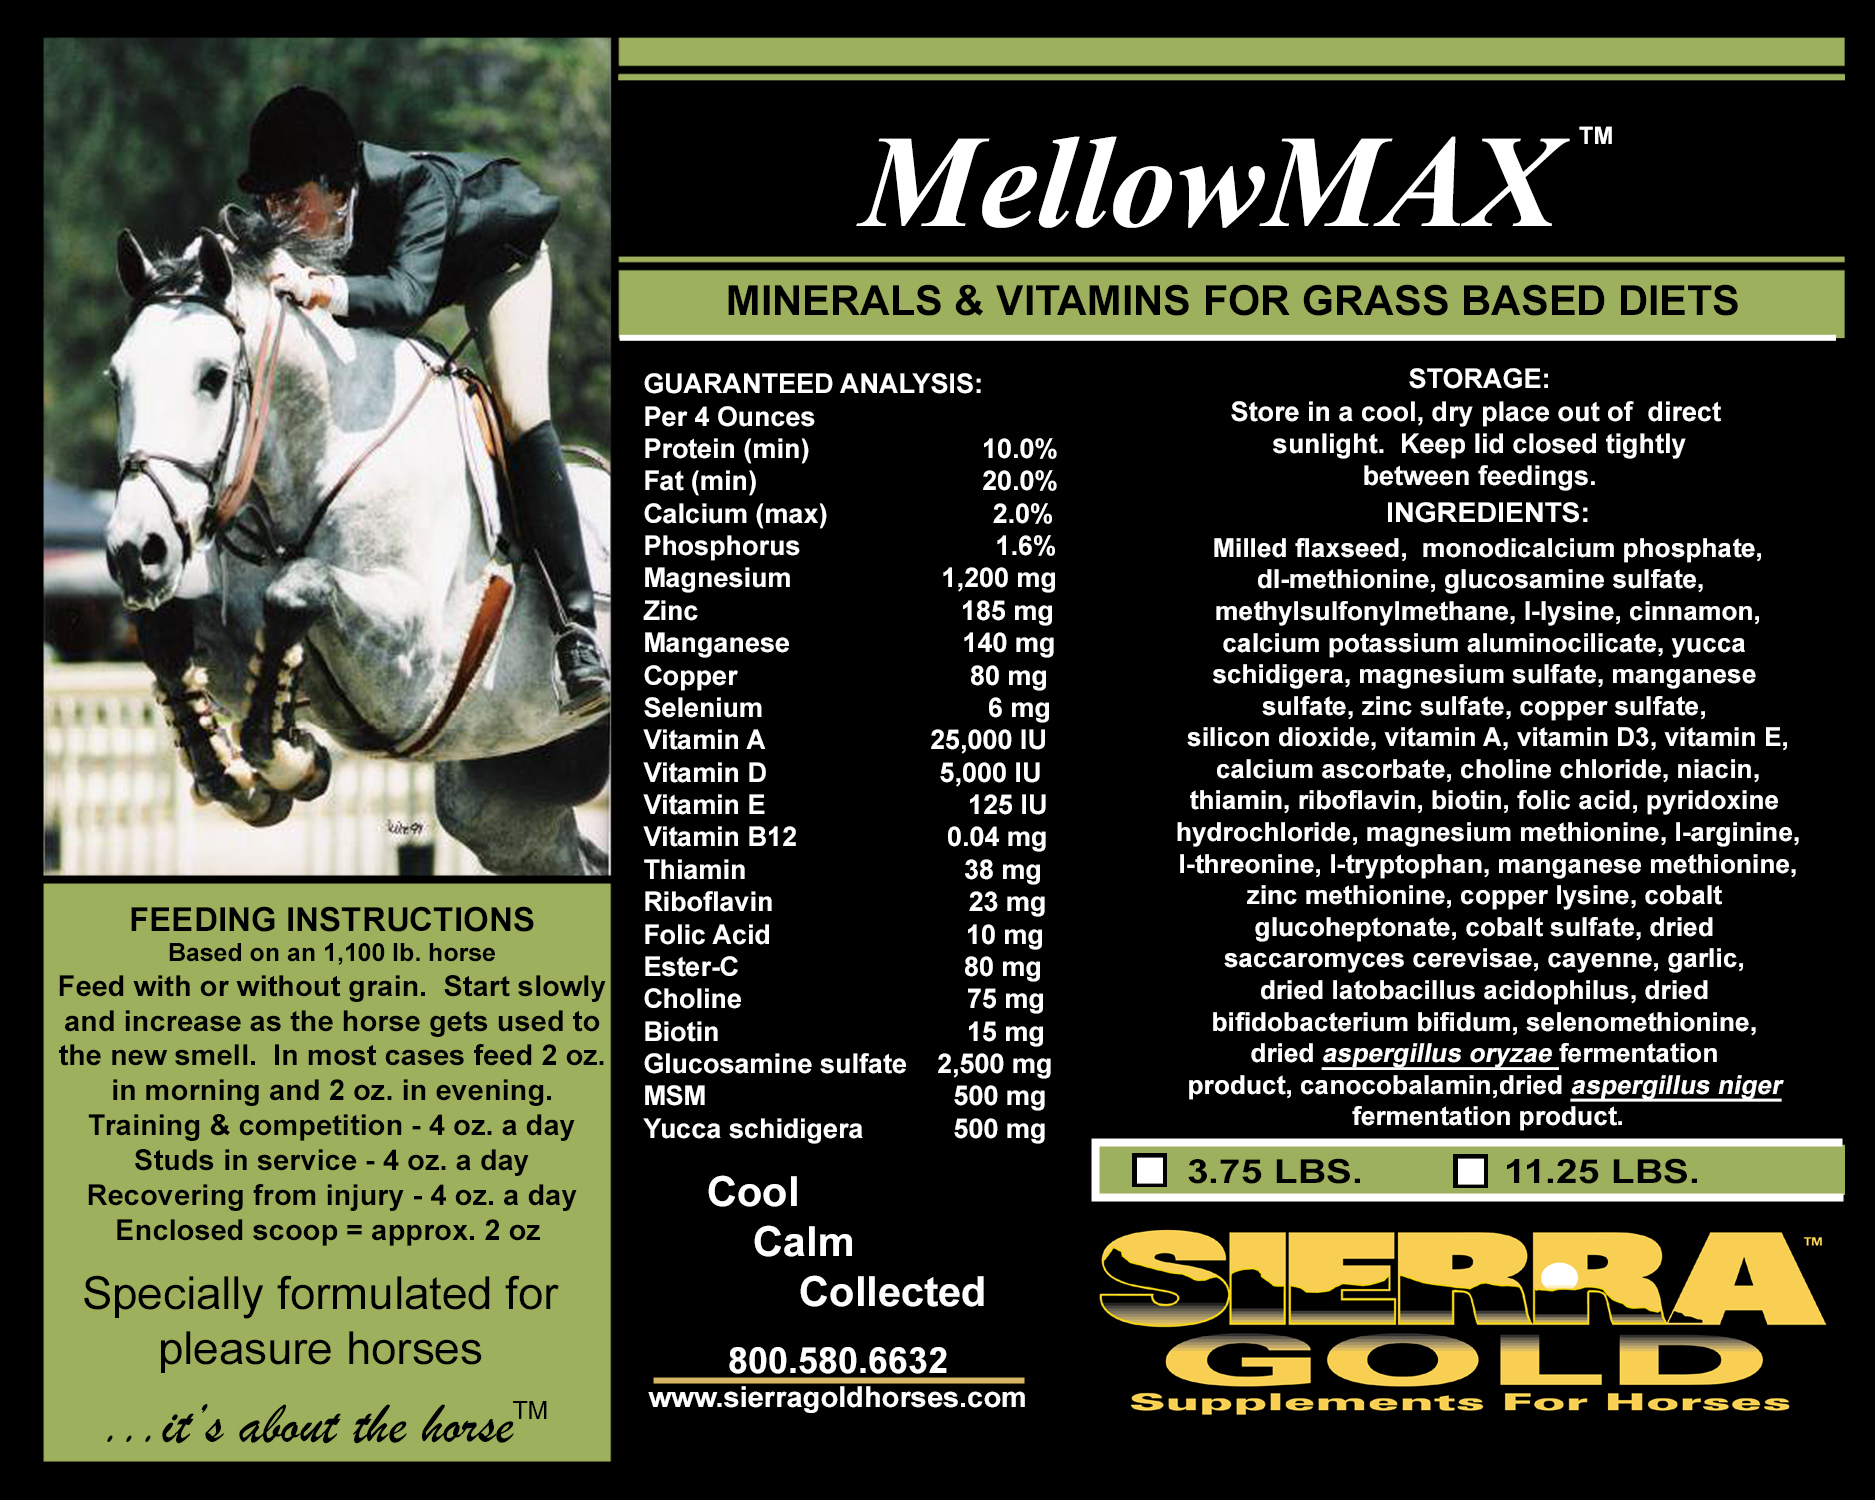 MellowMAX Grass